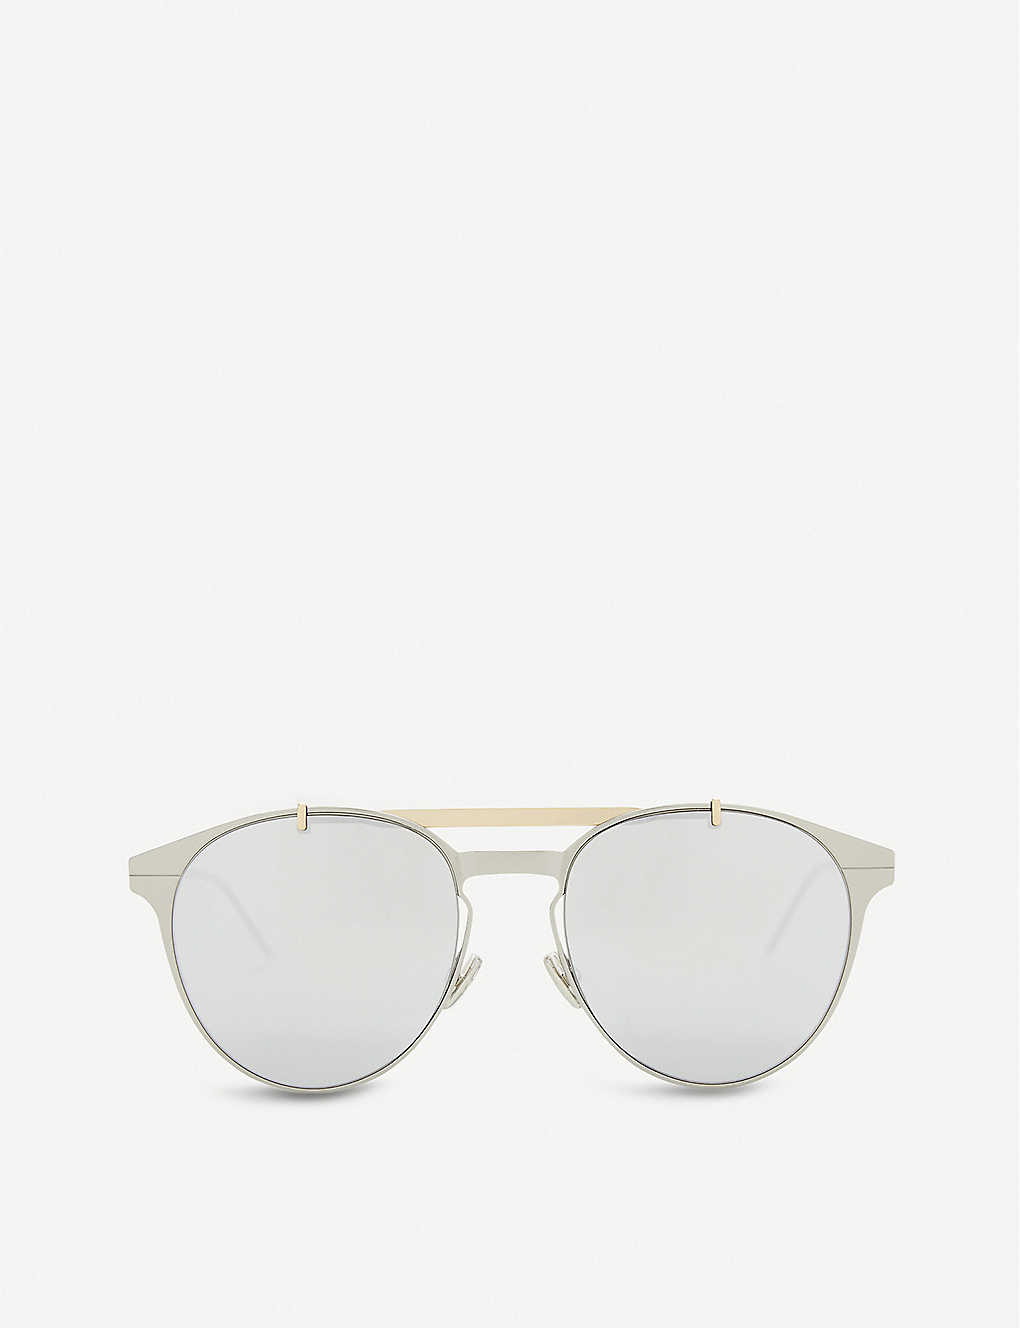 DIOR: Motion 1 mirrored sunglasses